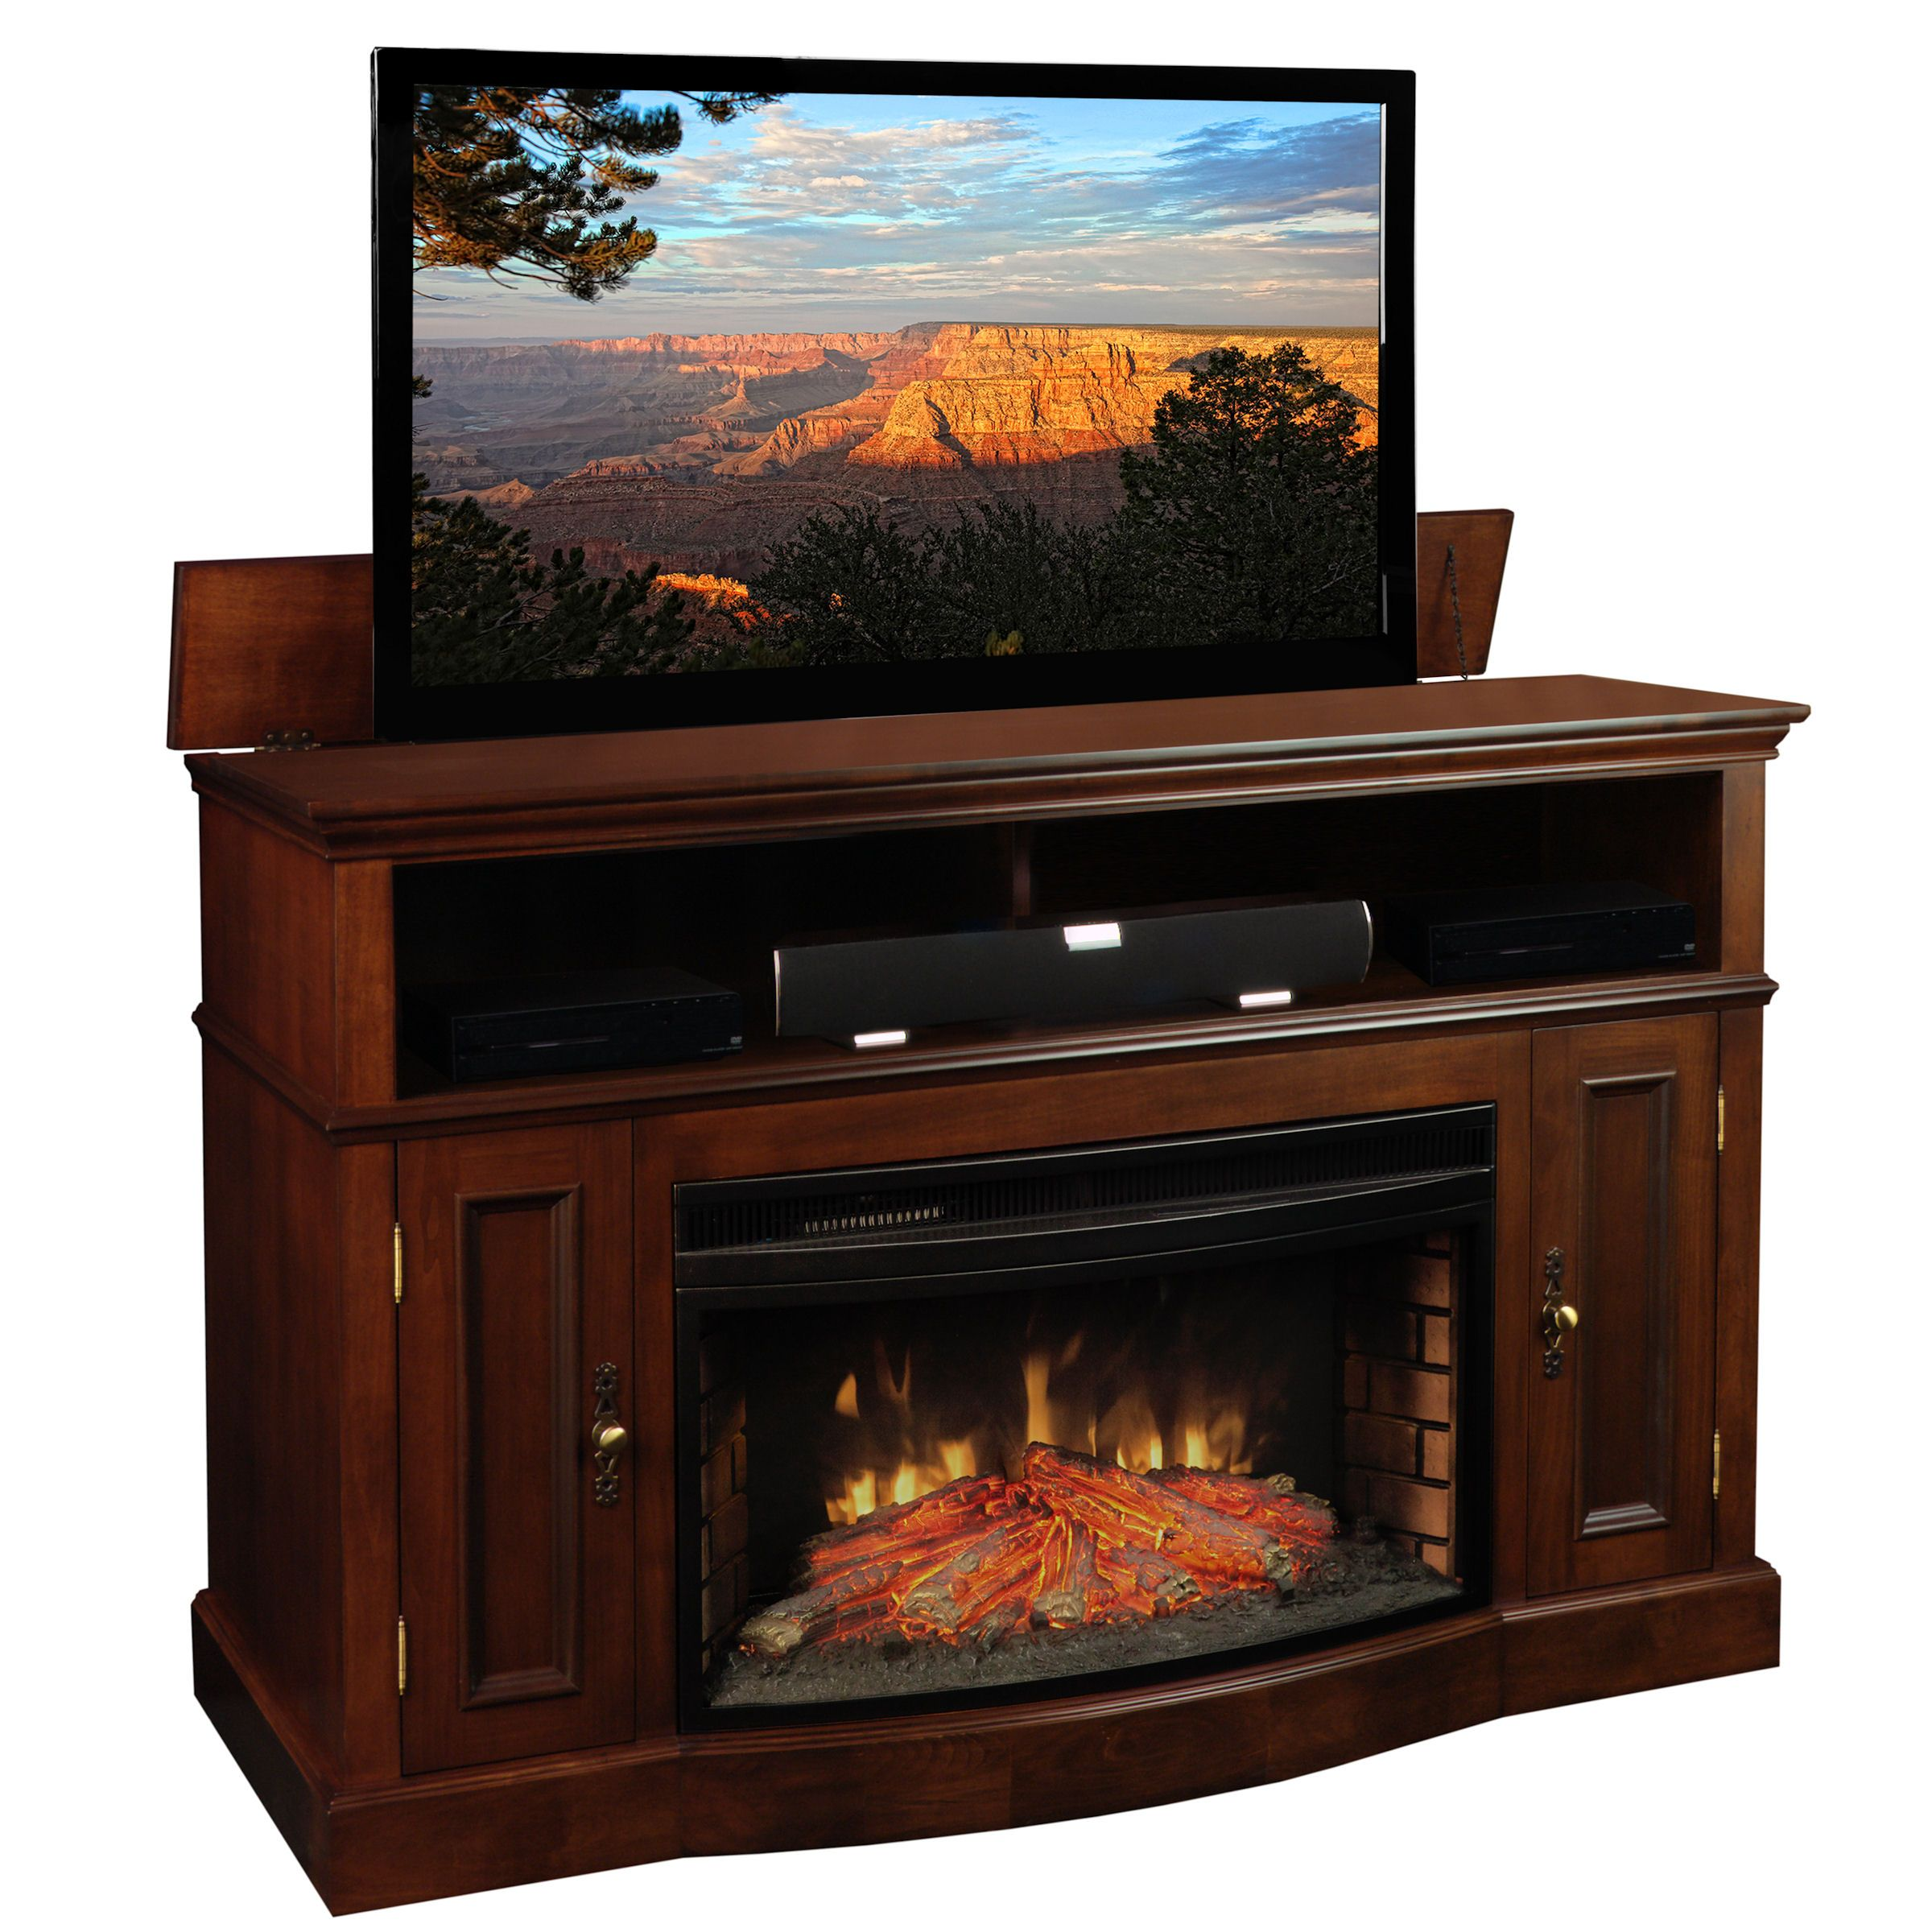 Tv Lift Cabinets Pop Up Consoles Tvliftcabinet Com Tv Lift Cabinet Fireplace Tv Stand Fireplace Entertainment